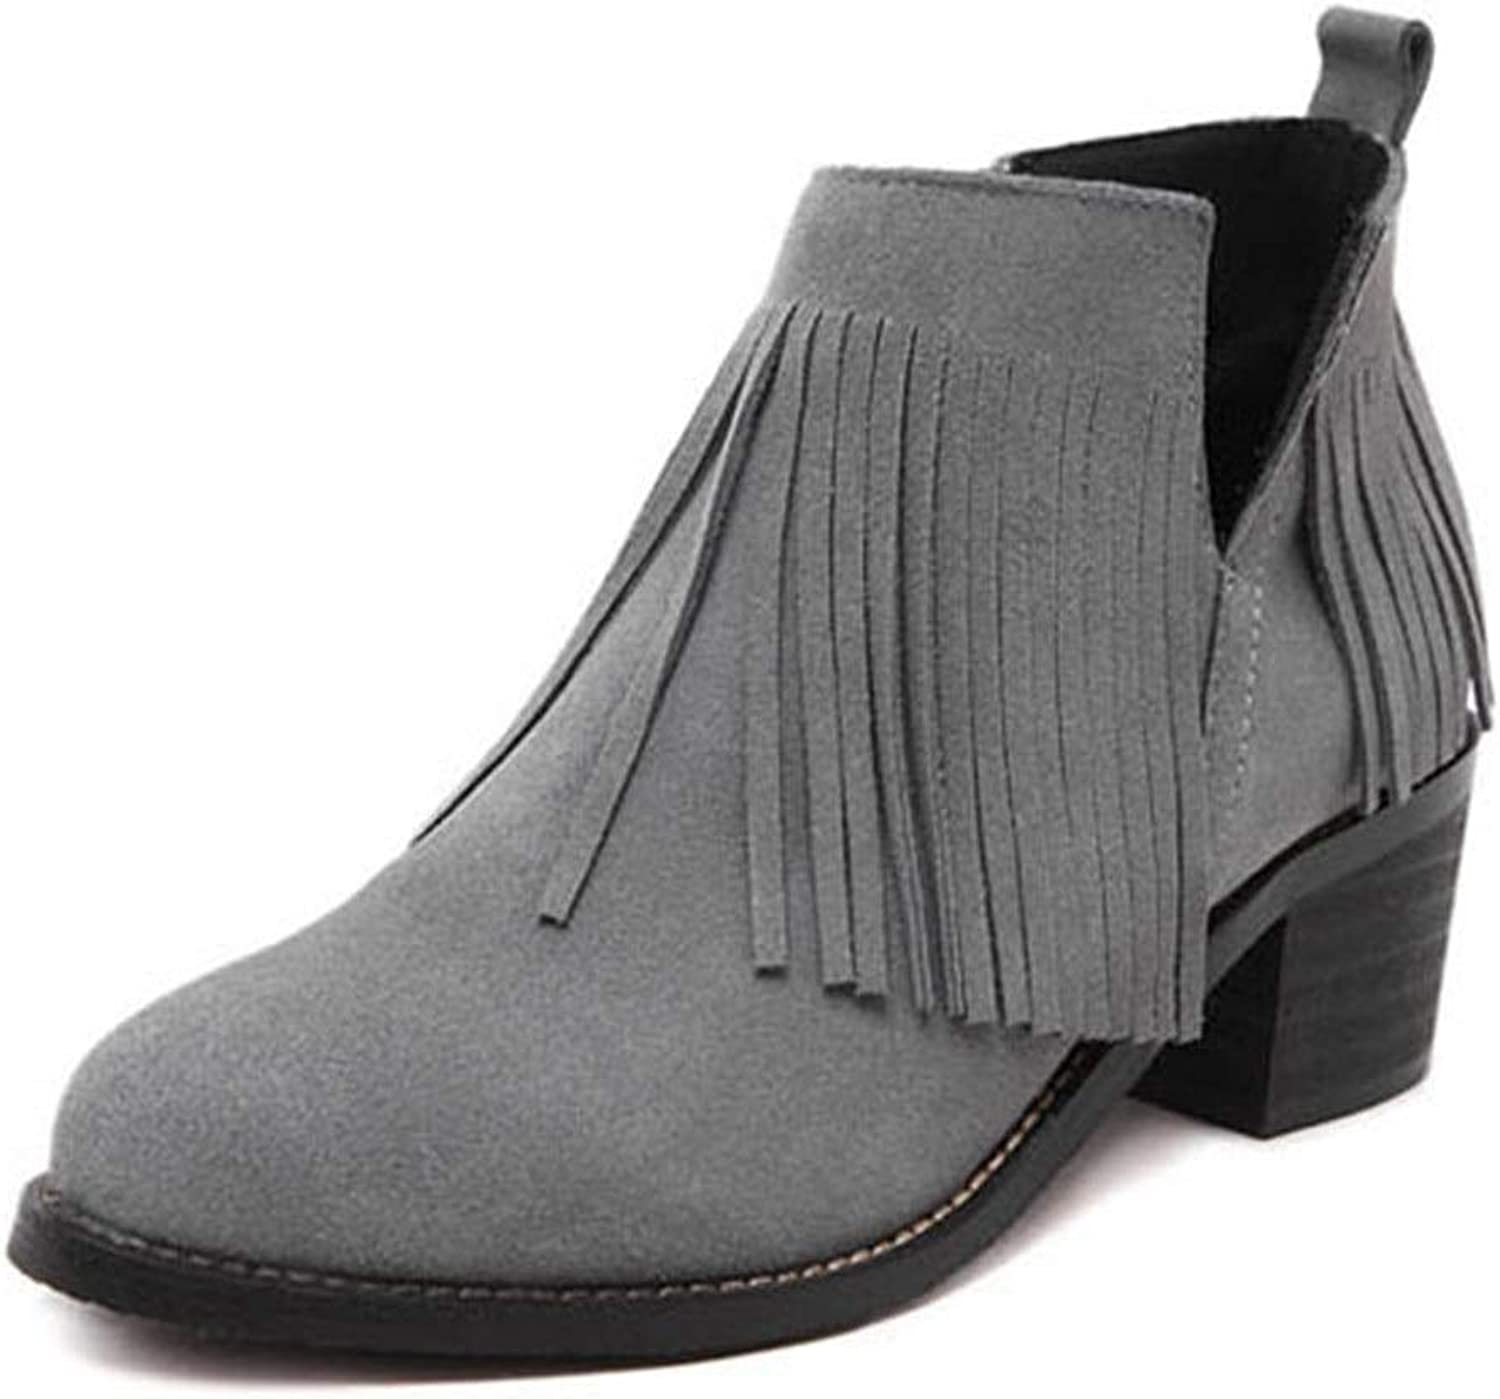 Winter Ladies' Thick and Bare Boots Large Size PU Leather Warm Lining